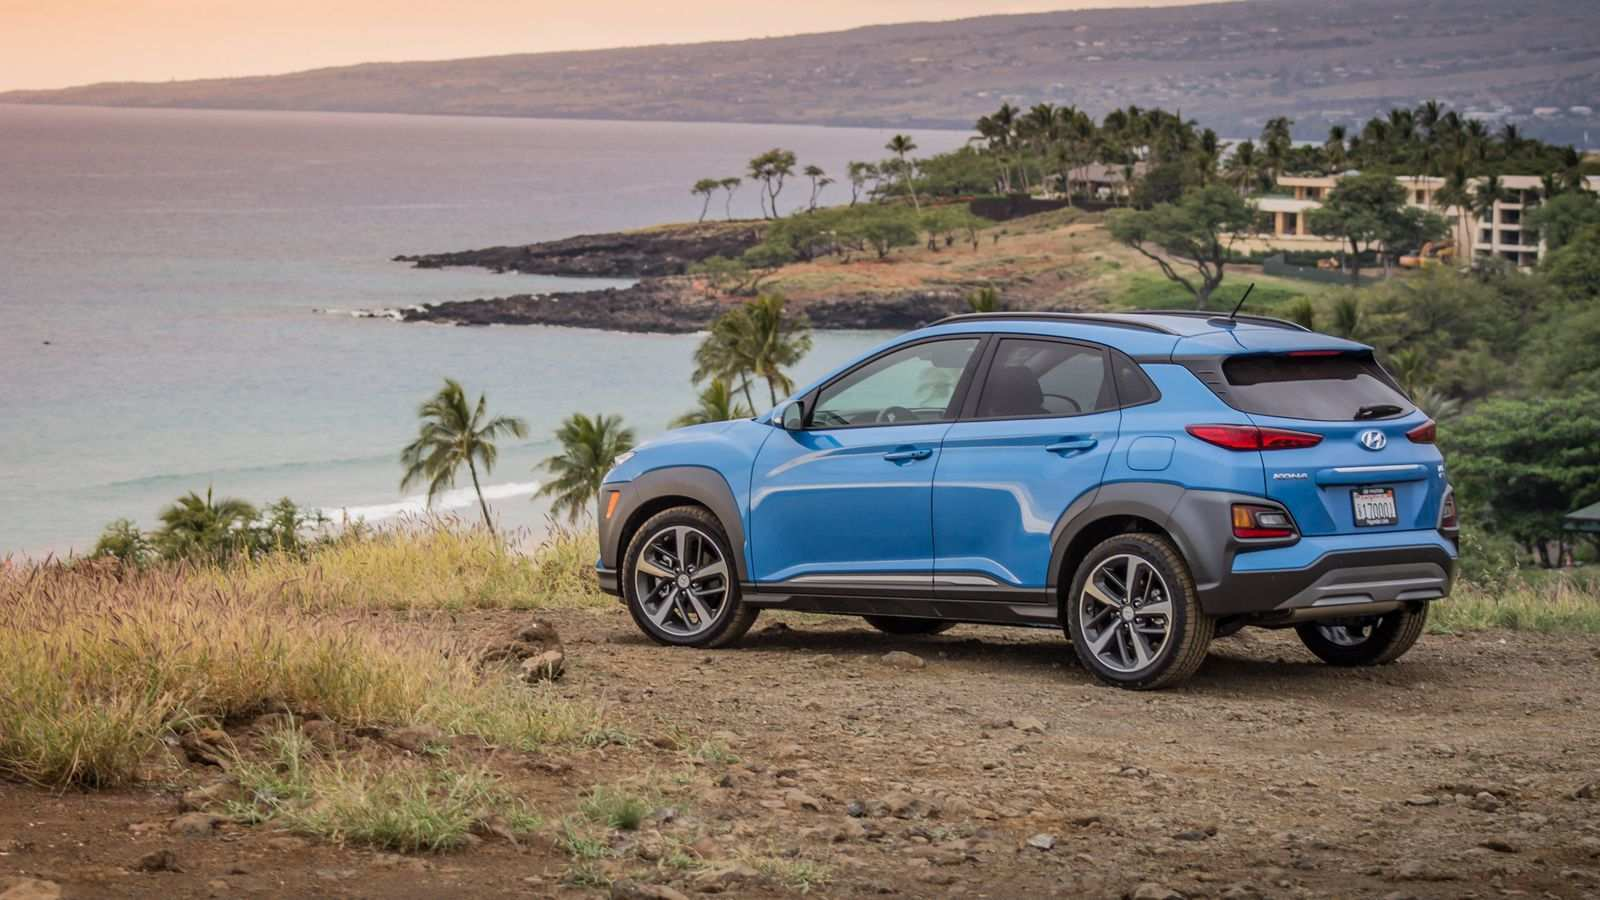 46 New When Does The 2020 Hyundai Kona Come Out Pricing